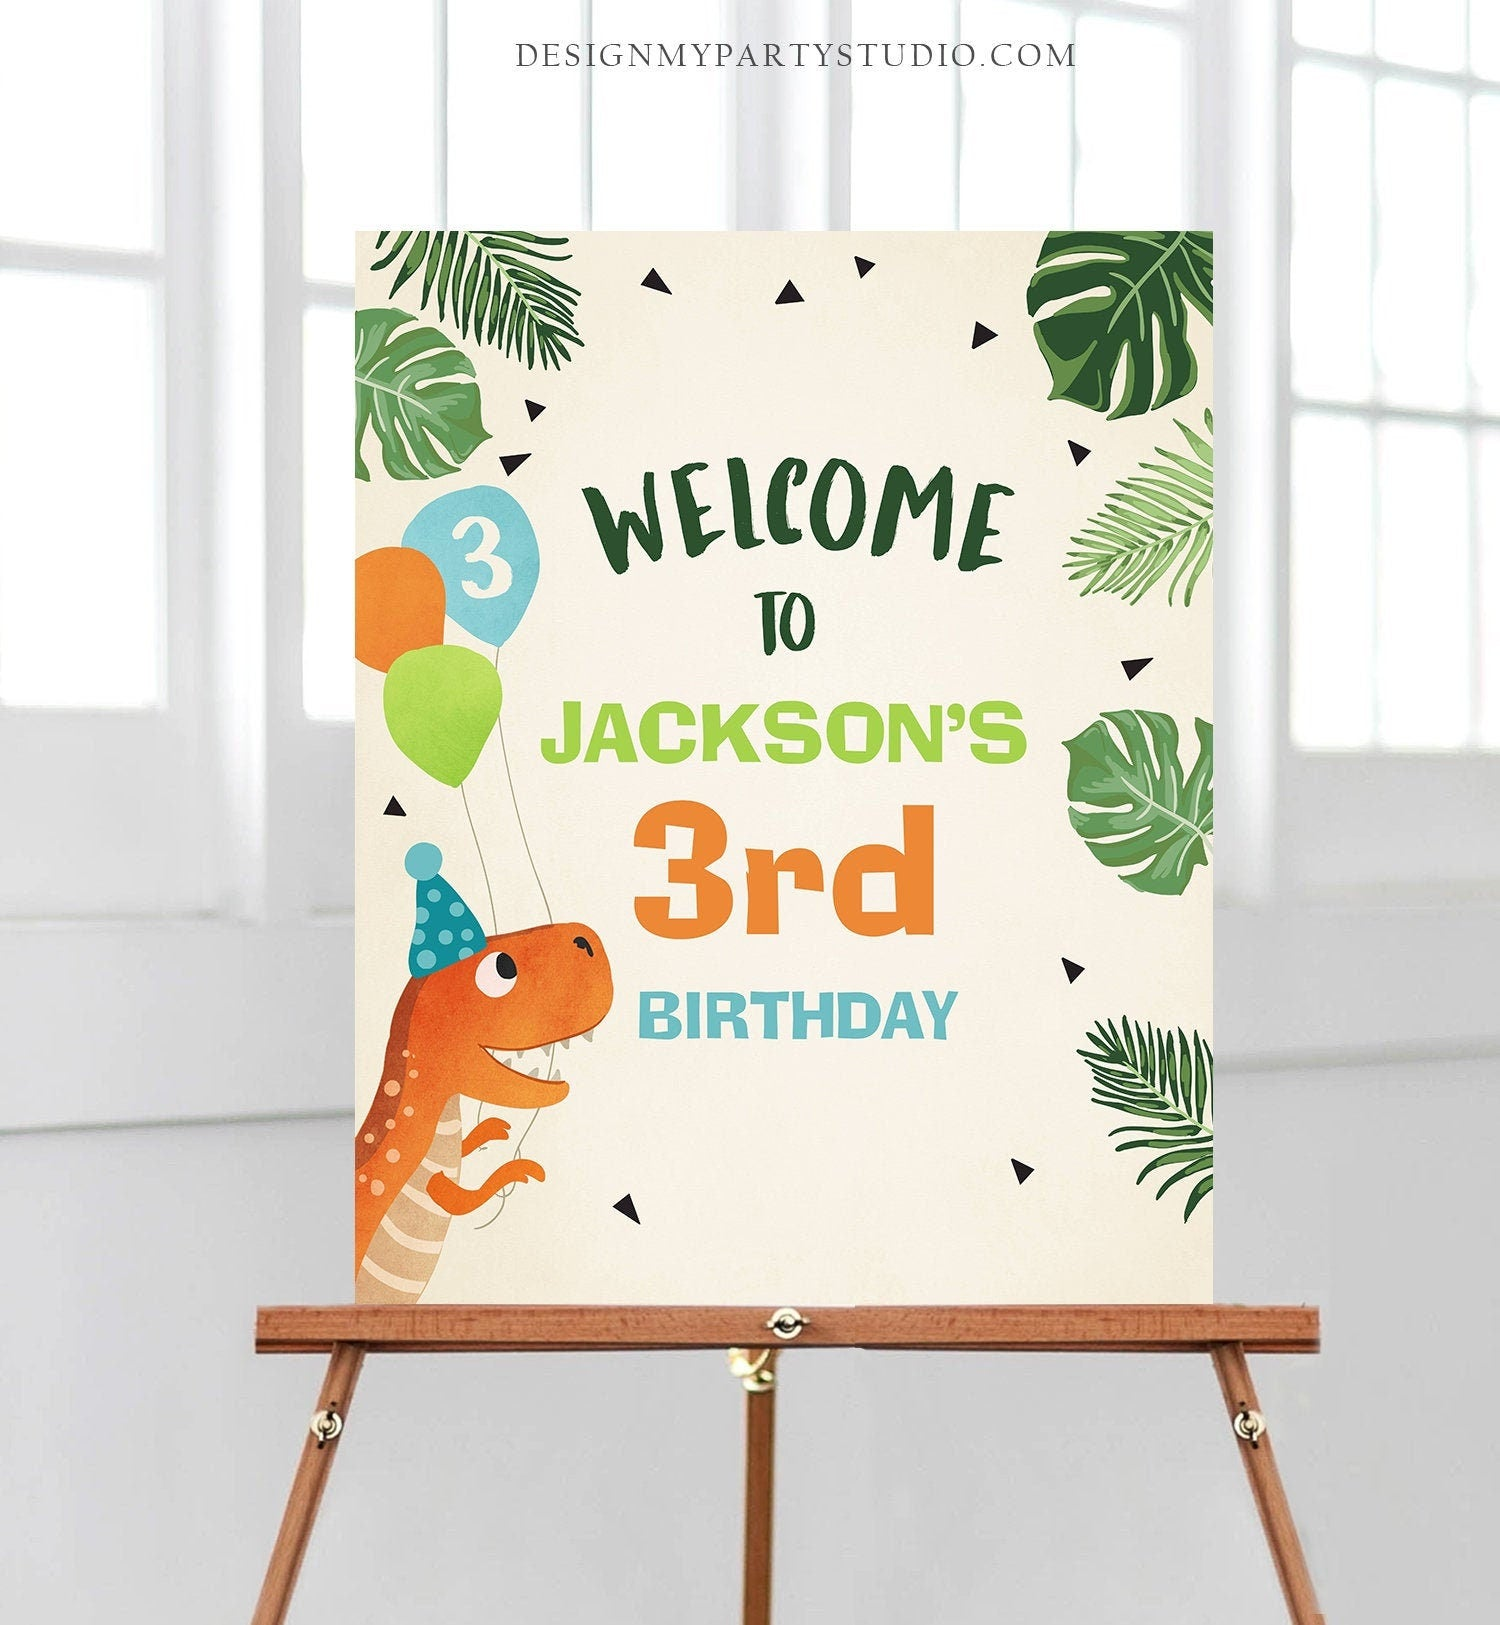 Editable Dinosaur Welcome Sign Party Dinosaur Birthday Sign Fossil Dino Dig T-Rex Dino Prehistoric Party Boy Template PRINTABLE Corjl 0074